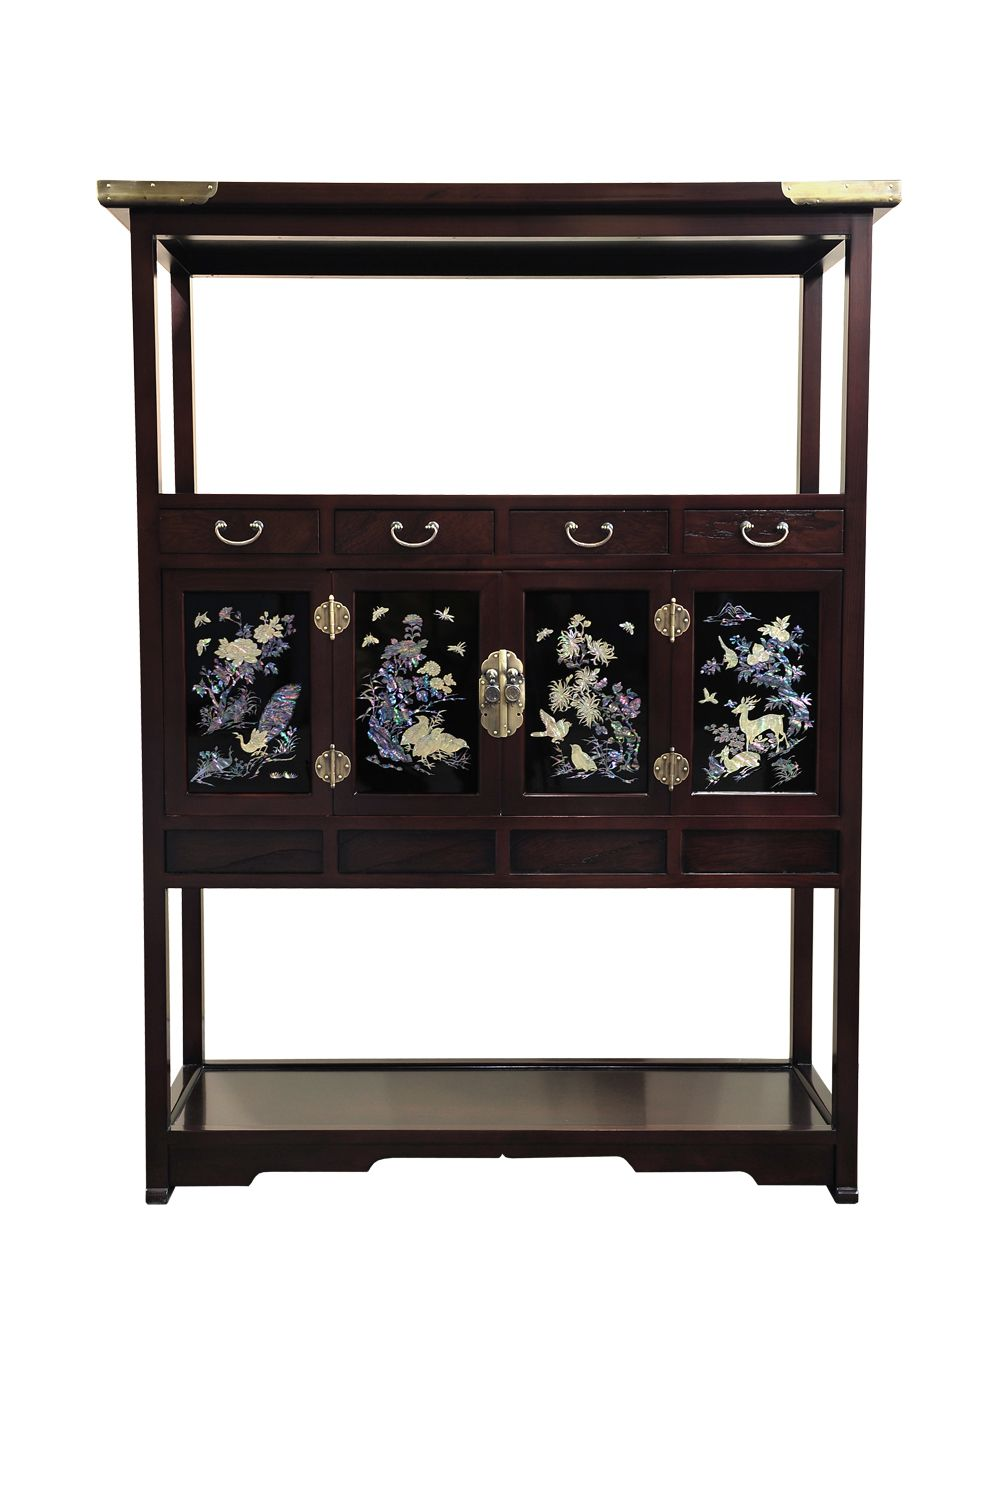 korean furniture | Korean antique furniture asian ...